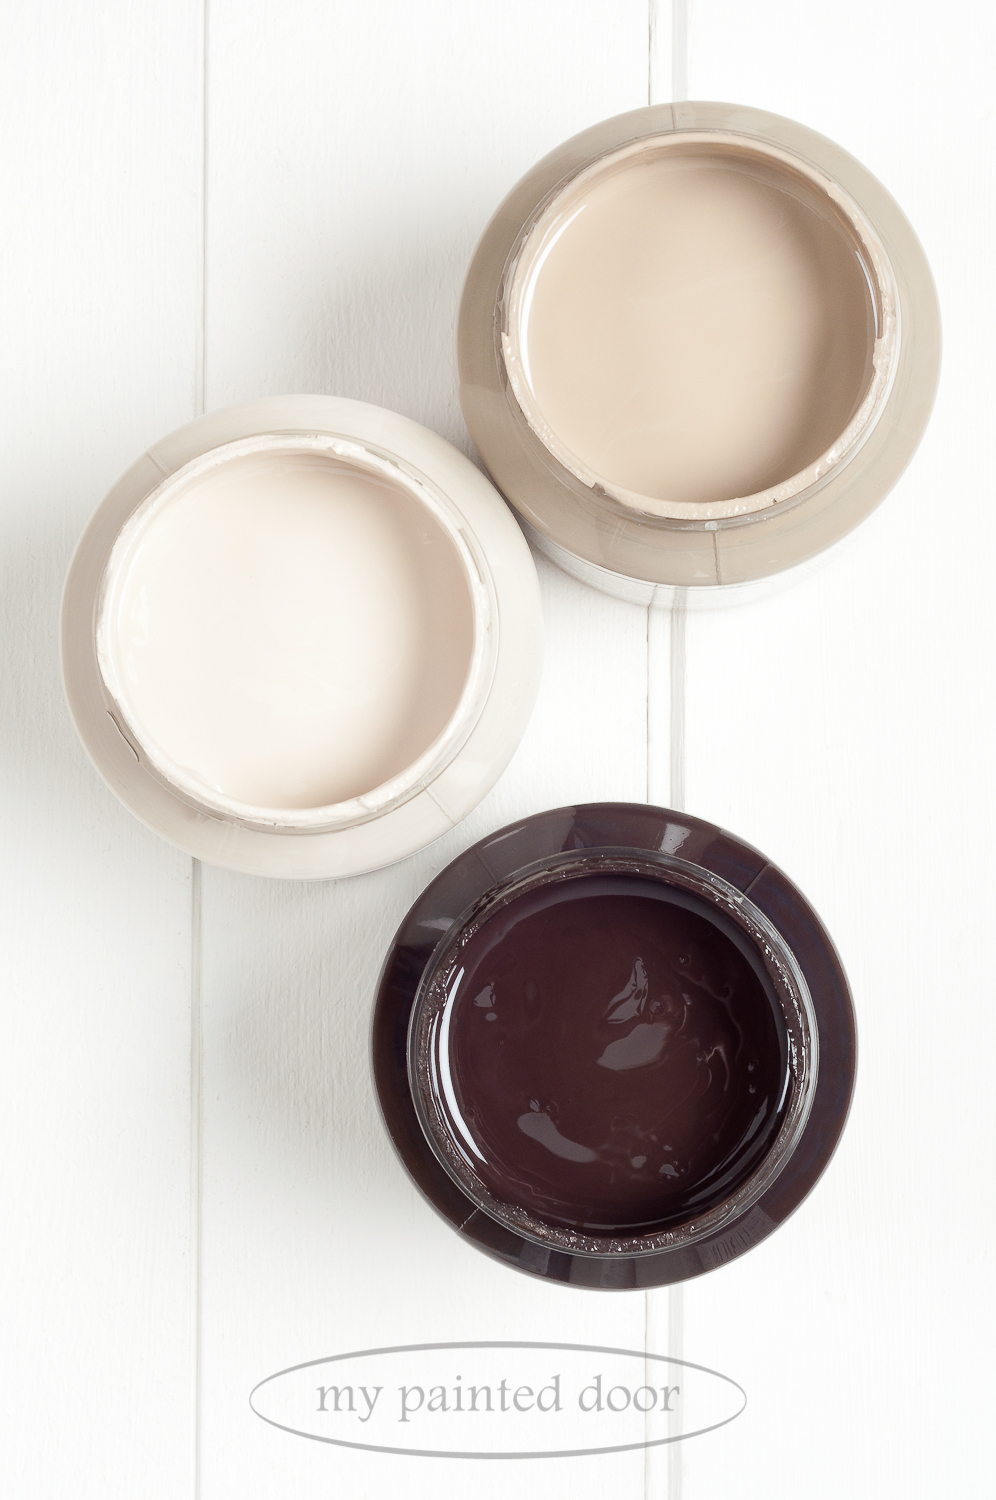 Fusion Mineral Paint Algonquin,Cathedral Taupe and Chocolate.